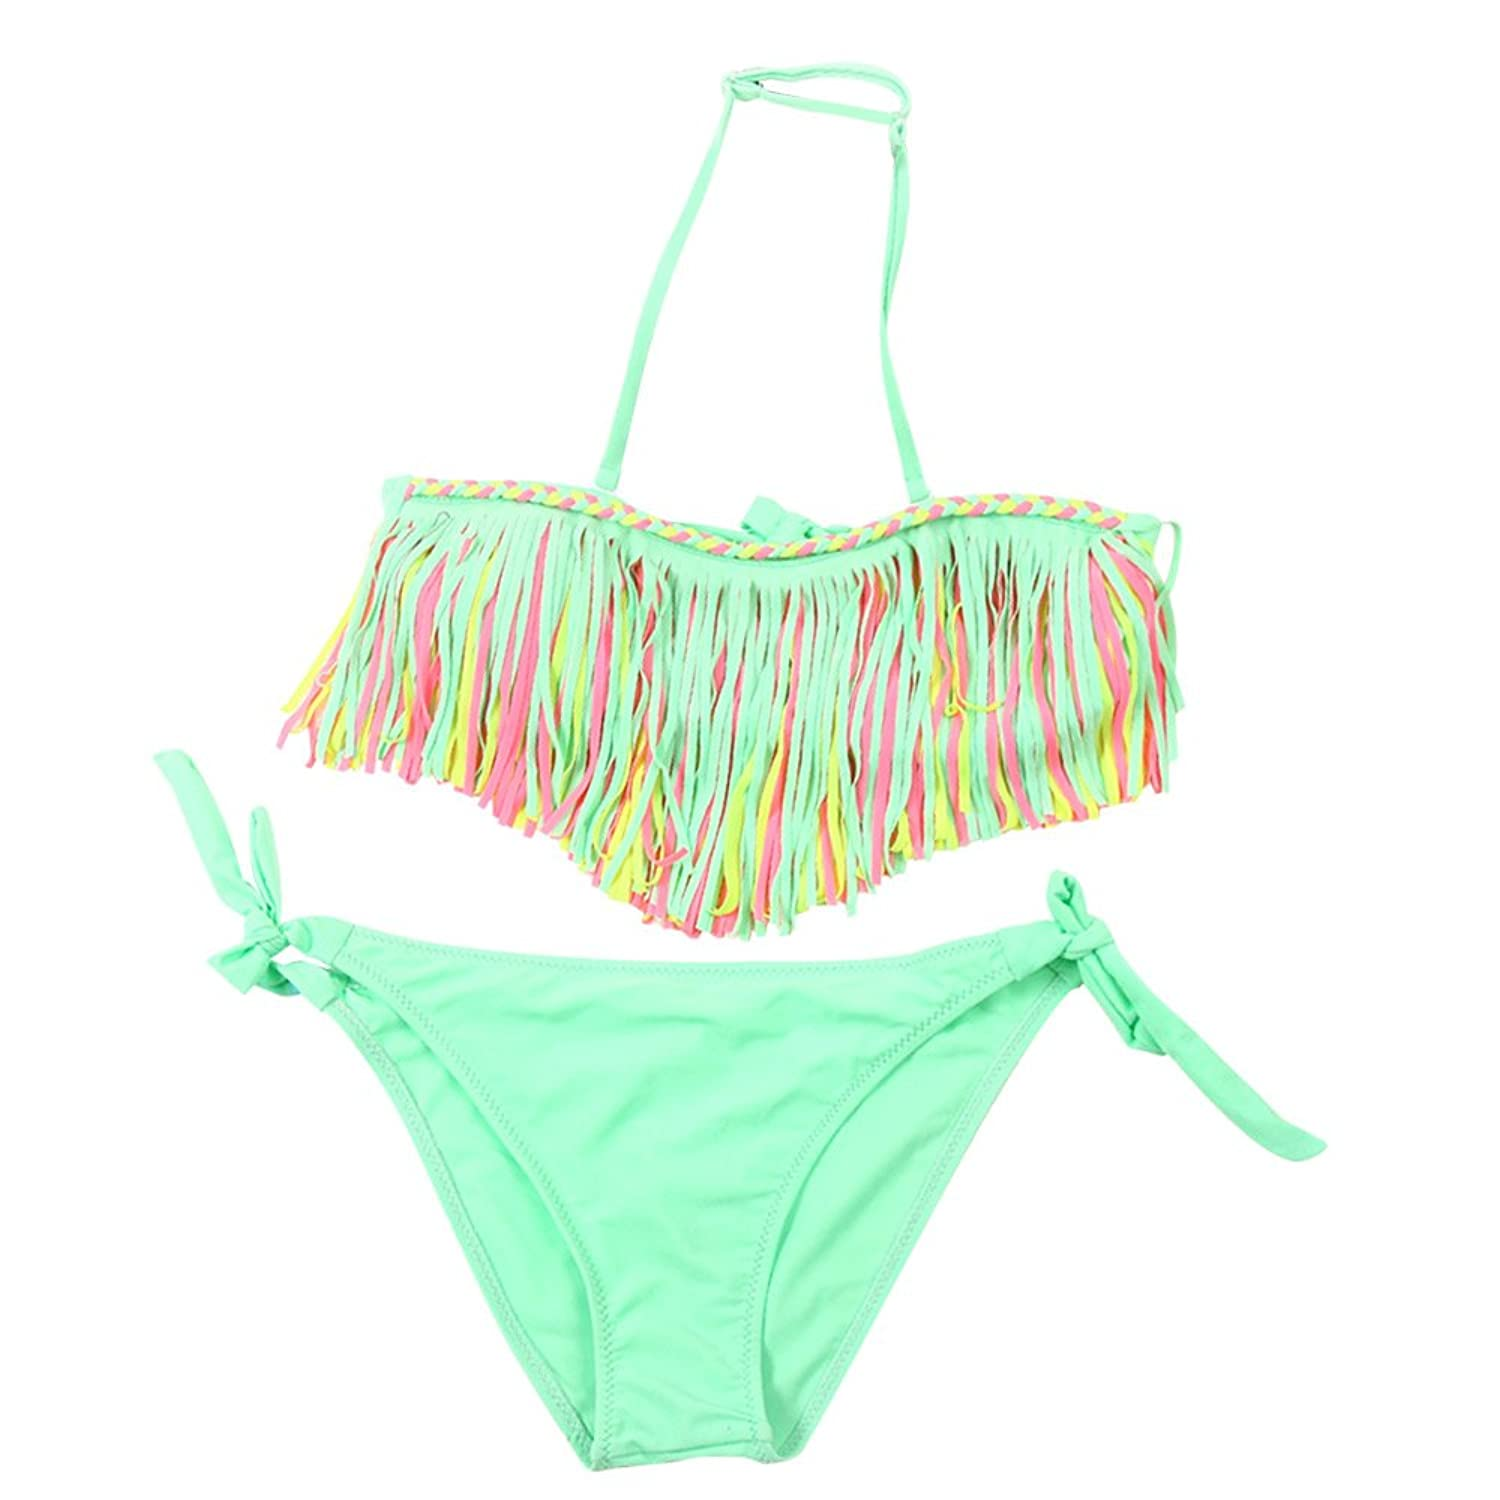 75c4ac91617d6 Wocharm Girls Kids Baby 3-12 Year Old Cute Summer Tassel Nylon Swimsuit  Bikini Set 2 Pcs